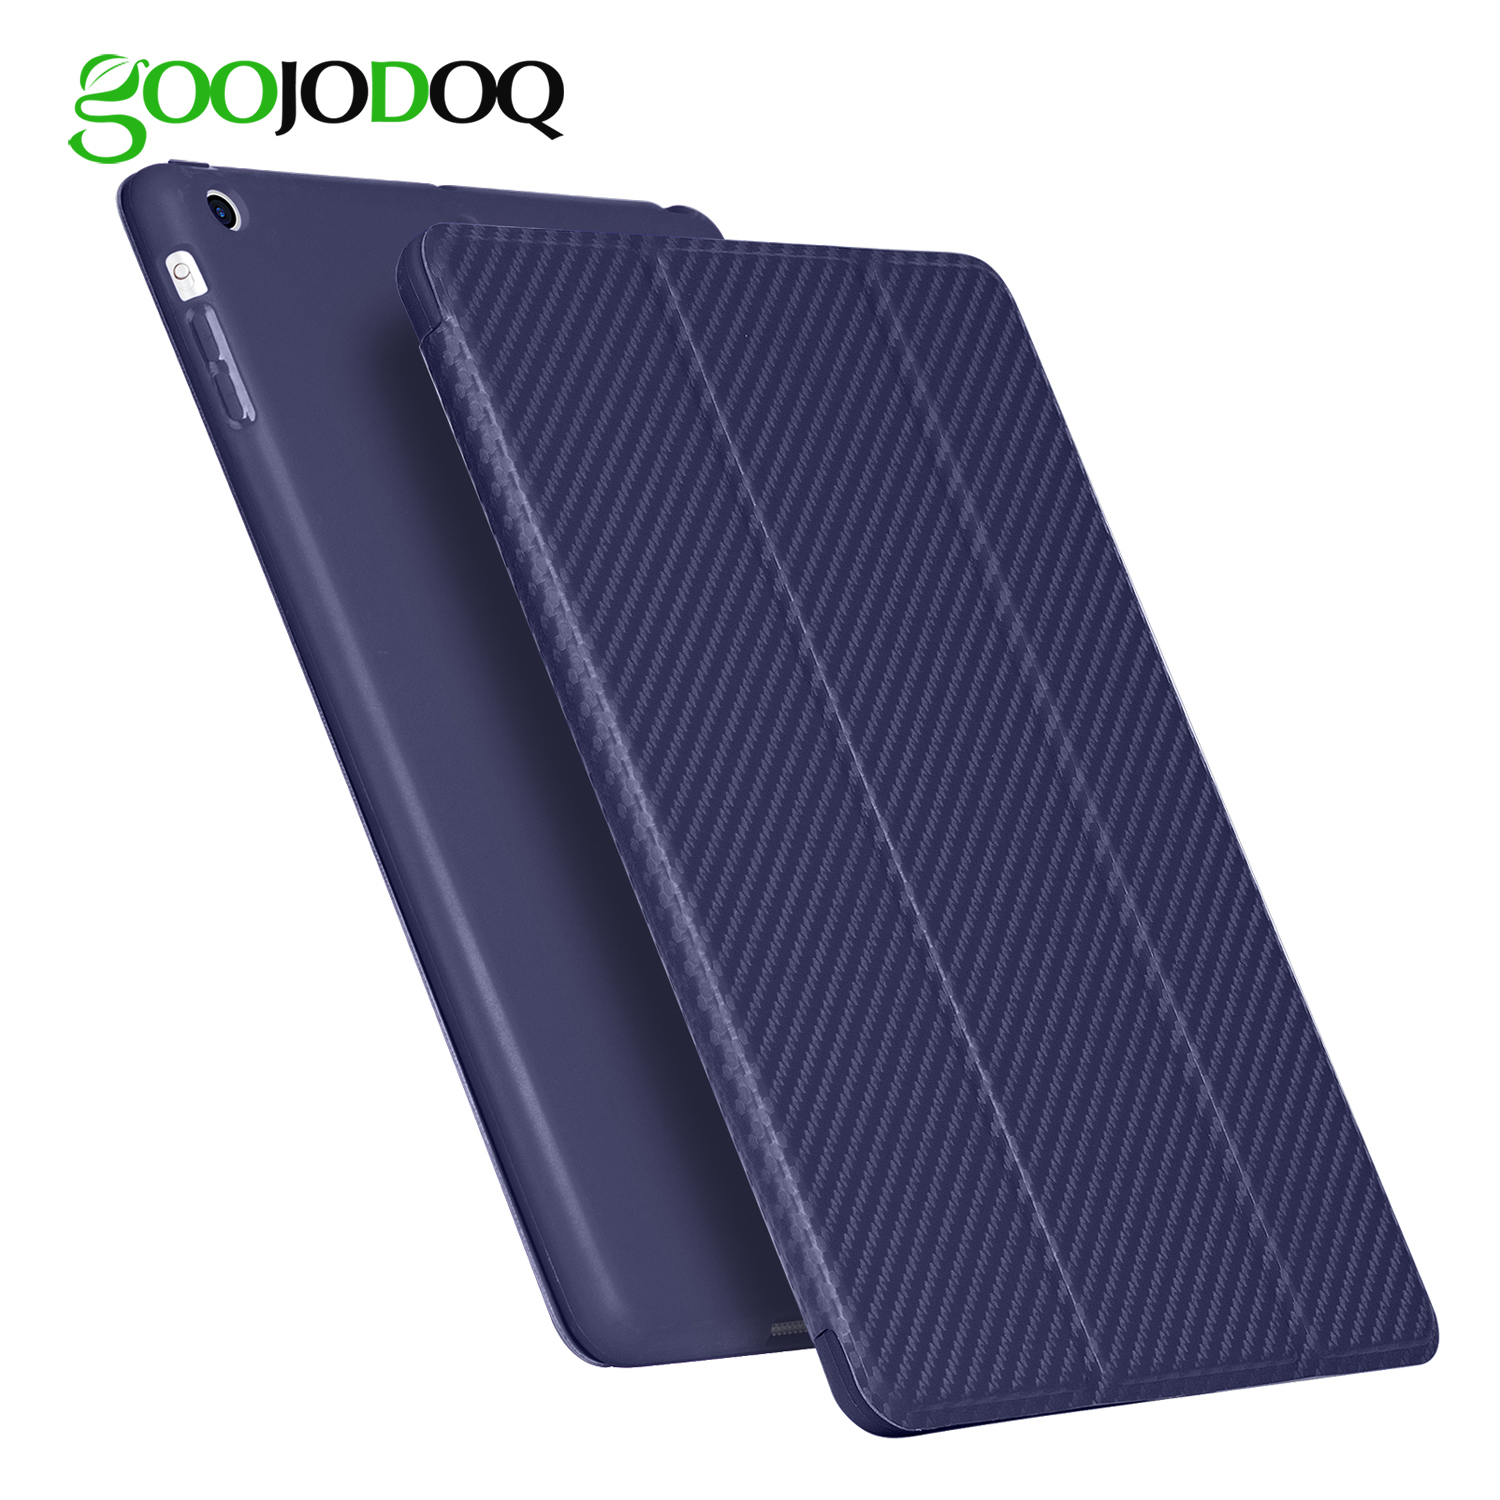 Case for iPad Air 2, GOOJODOQ Silicone Back Case for Apple iPad Air 2 iPad 6 PU Leather Smart Cover A1566 A1567 Auto Sleep/Wake zoyu smart cover for apple ipad air 2 air 1 case hot case for ipad 5 6 case